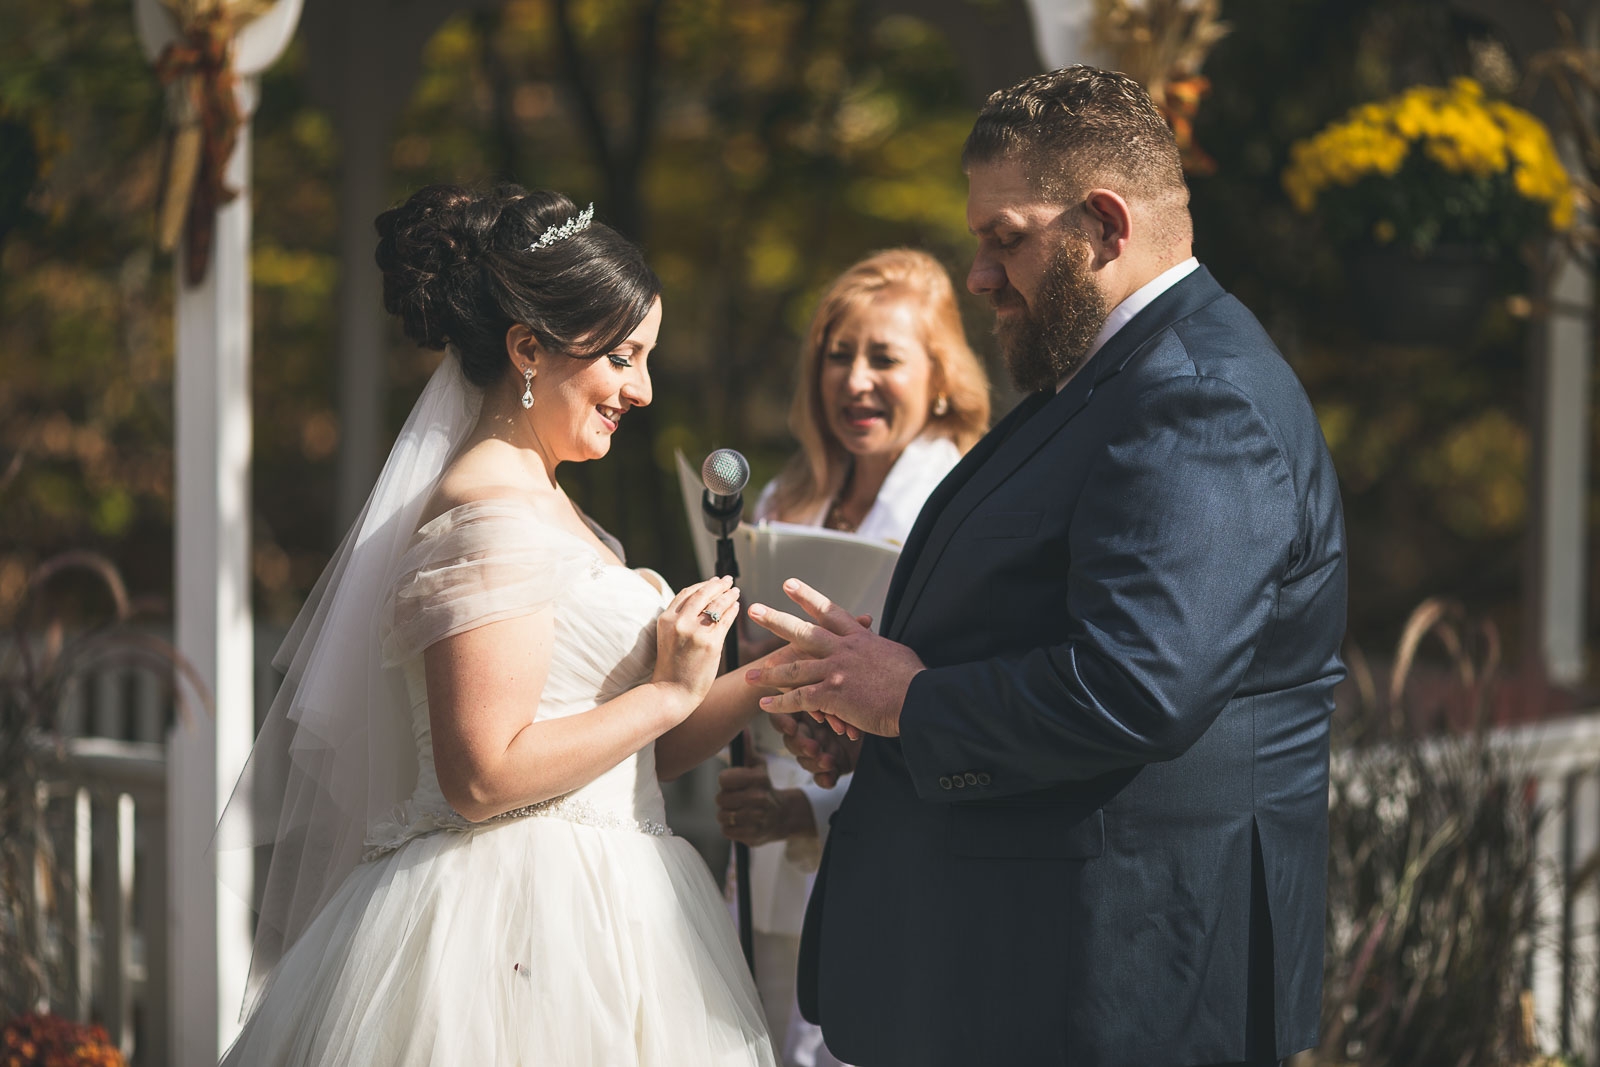 Bride sheds a tear exchanges ring with groom